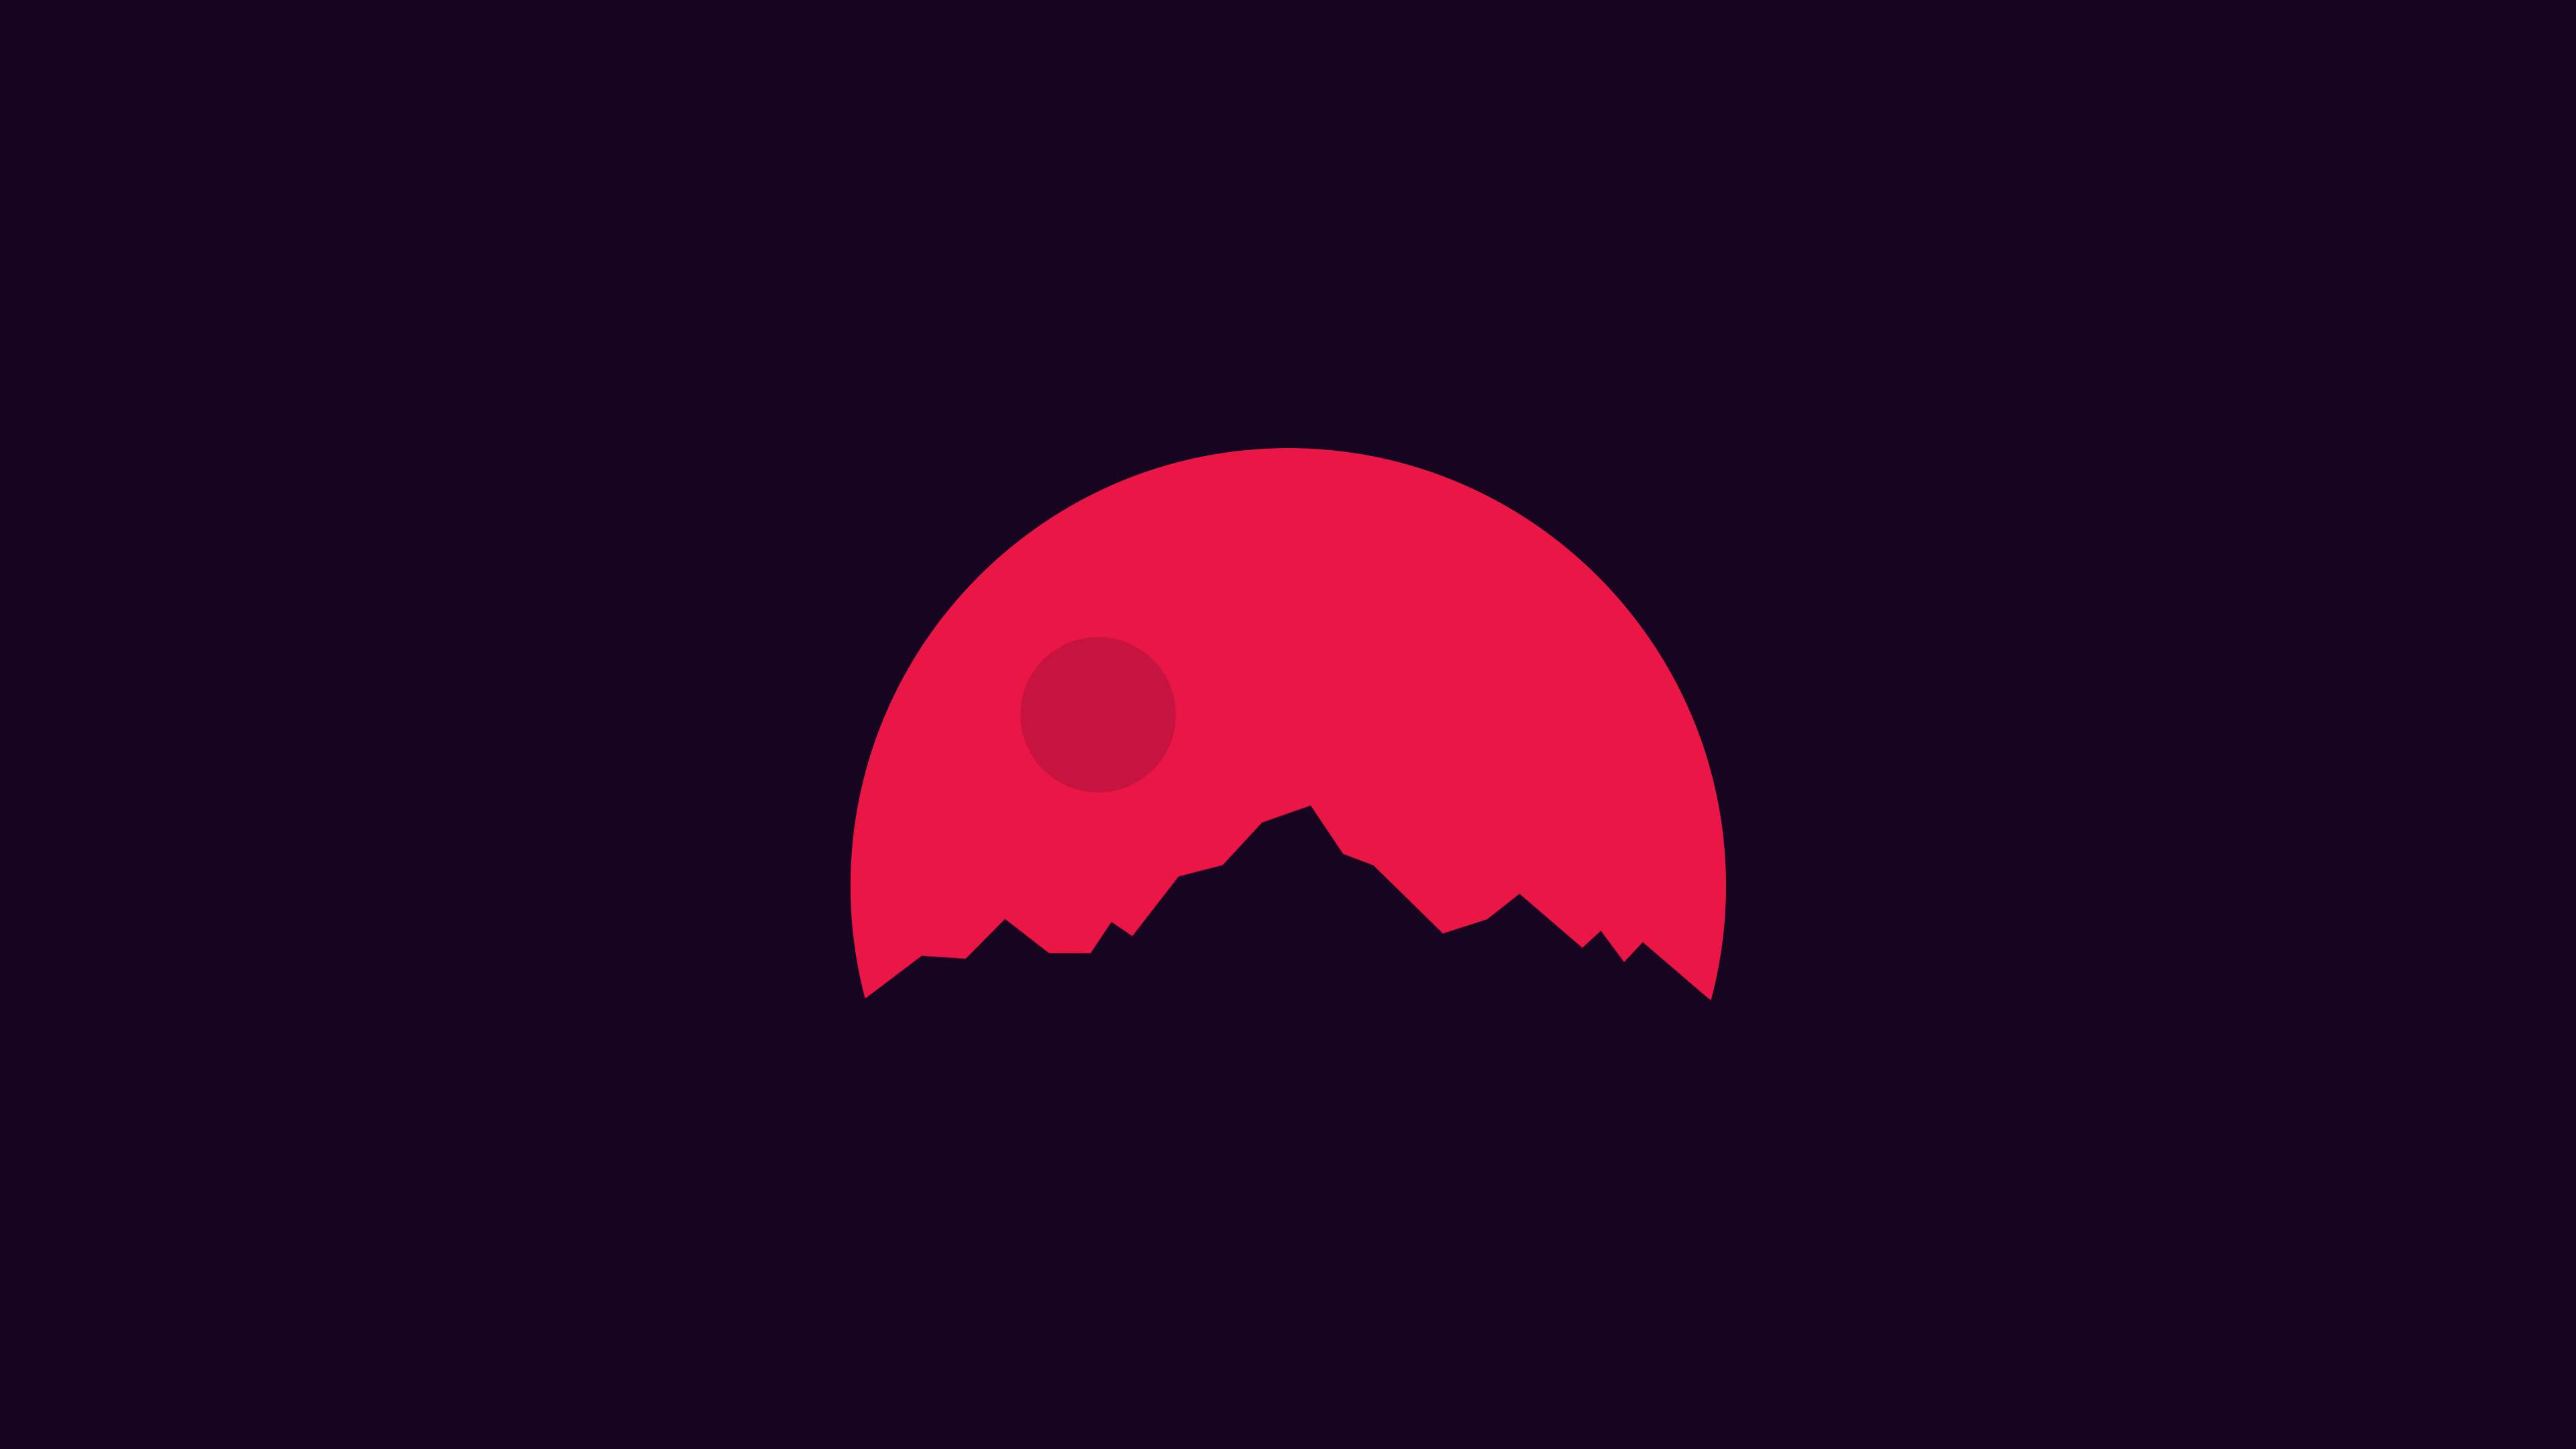 minimalism mountains red nexus 7samsung galaxy tab 10note android tablets